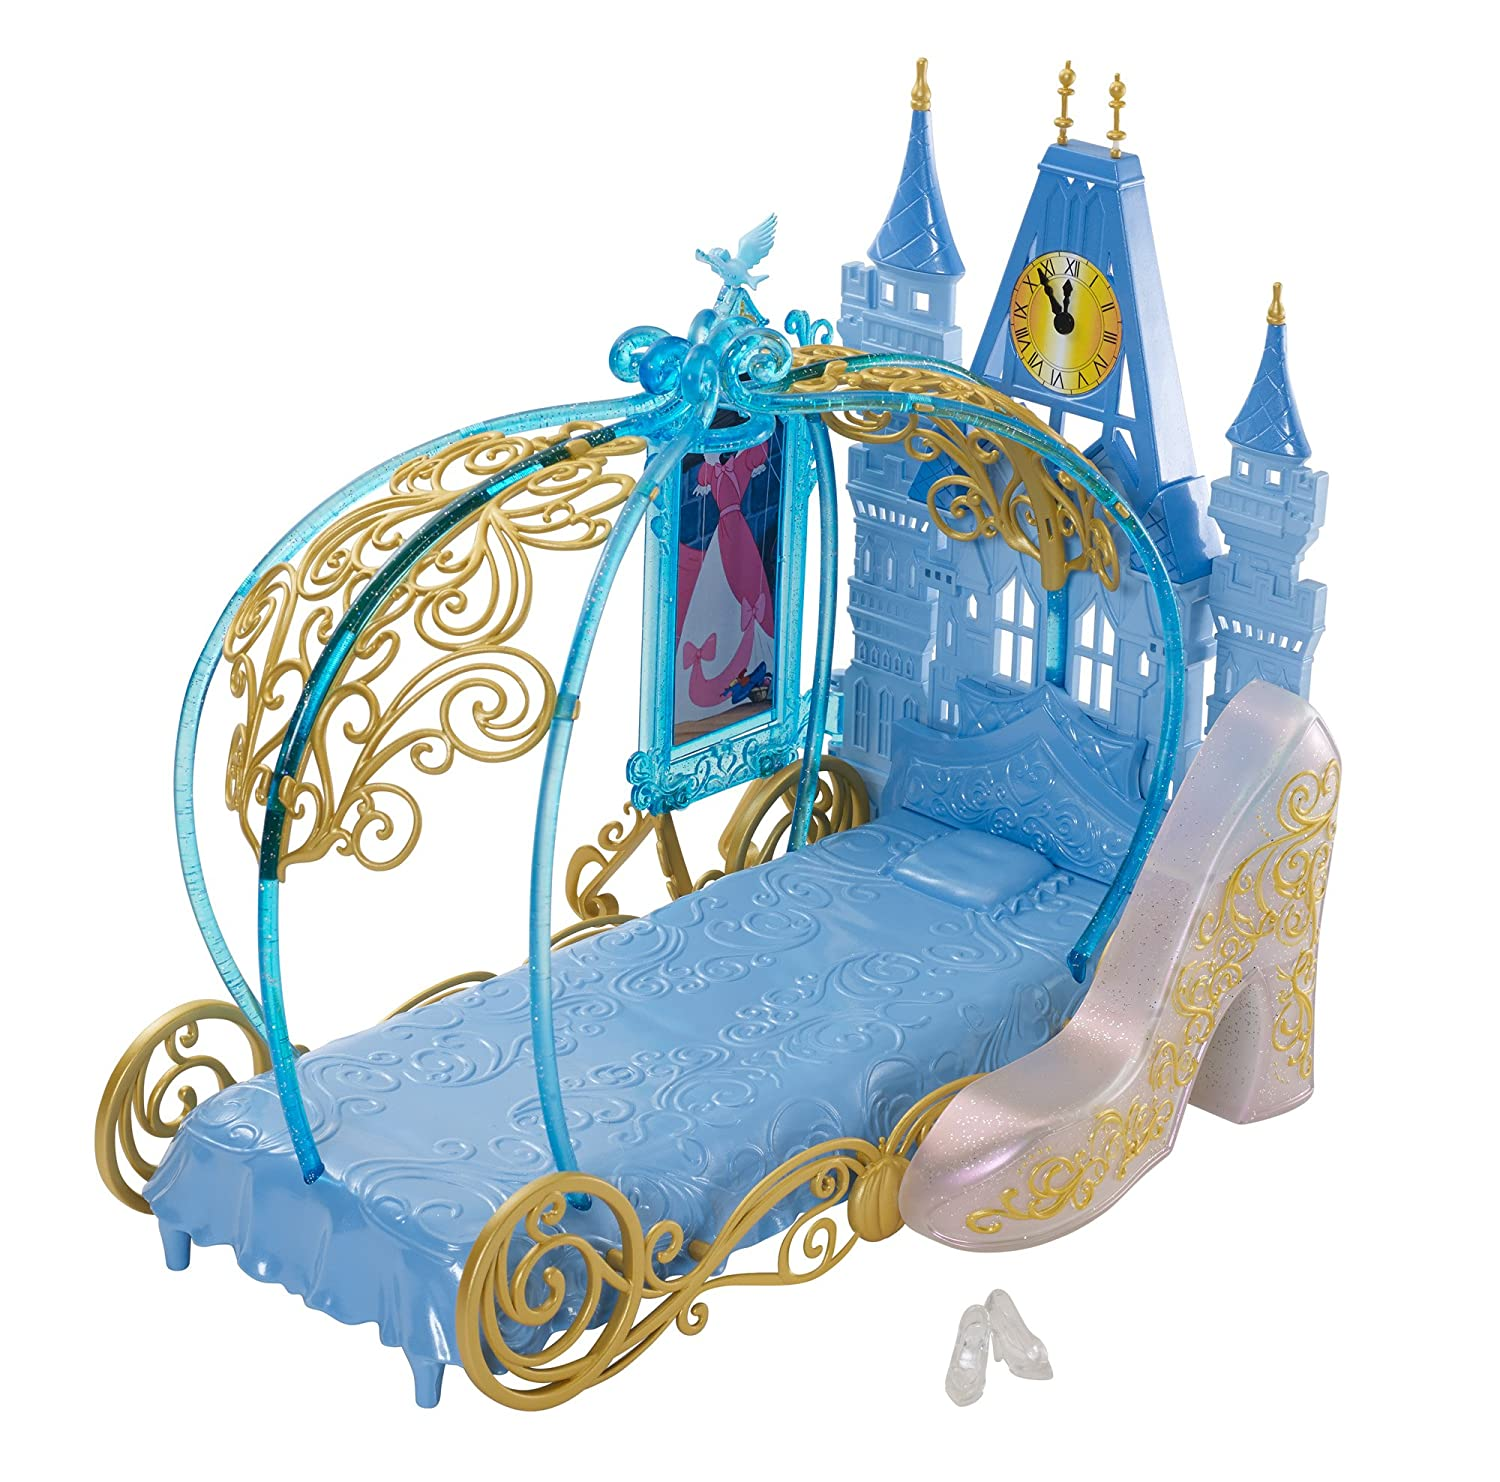 Amazon.com: Disney Princess Cinderellau0027s Dream Bedroom Playset Doll: Toys U0026  Games